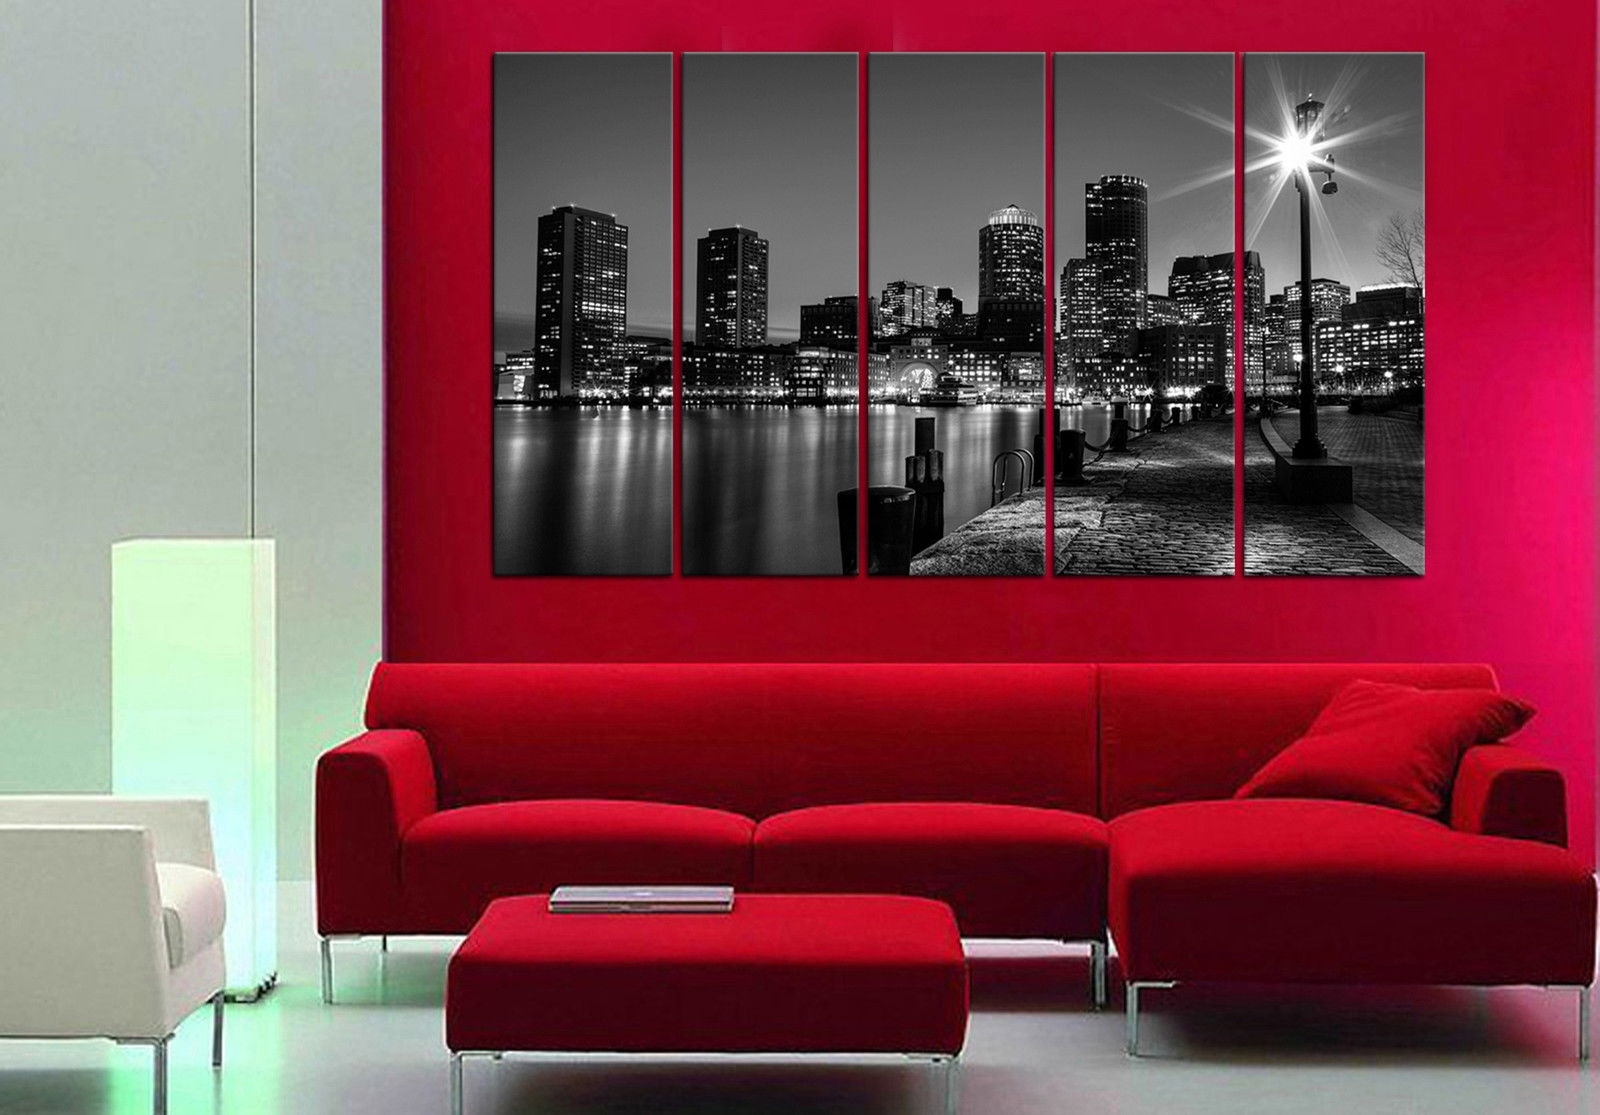 Boston Night 5 Piece Mounted Fiber Board Canvas Wall Art/better Than Pertaining To Current Boston Wall Art (Gallery 12 of 20)